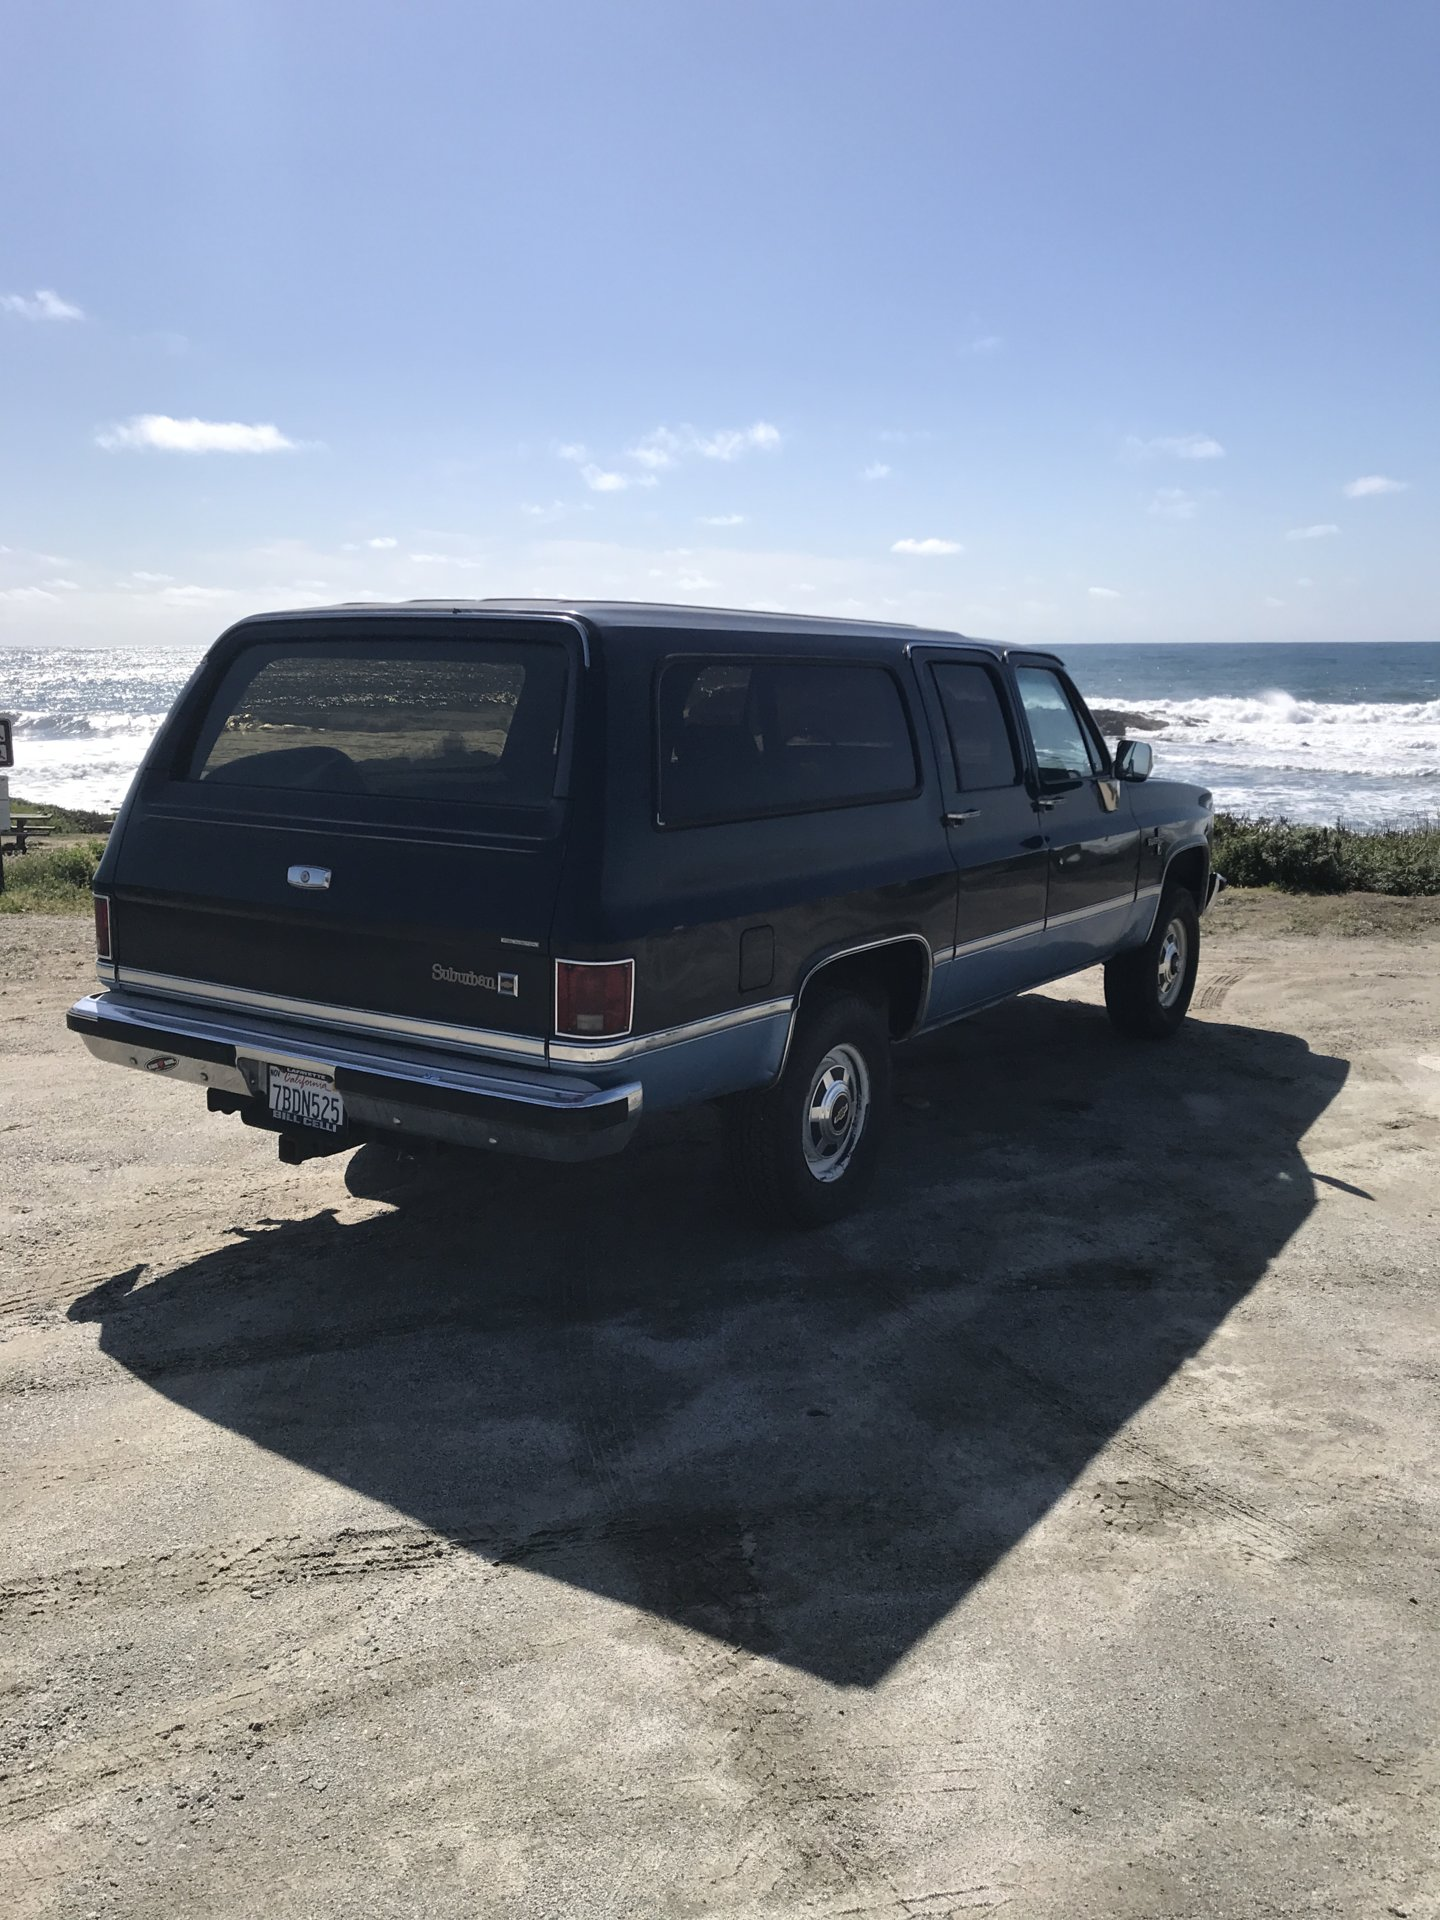 For Sale - 1987 Chevy suburban v20 factory 4spd! 4x4 | IH8MUD Forum